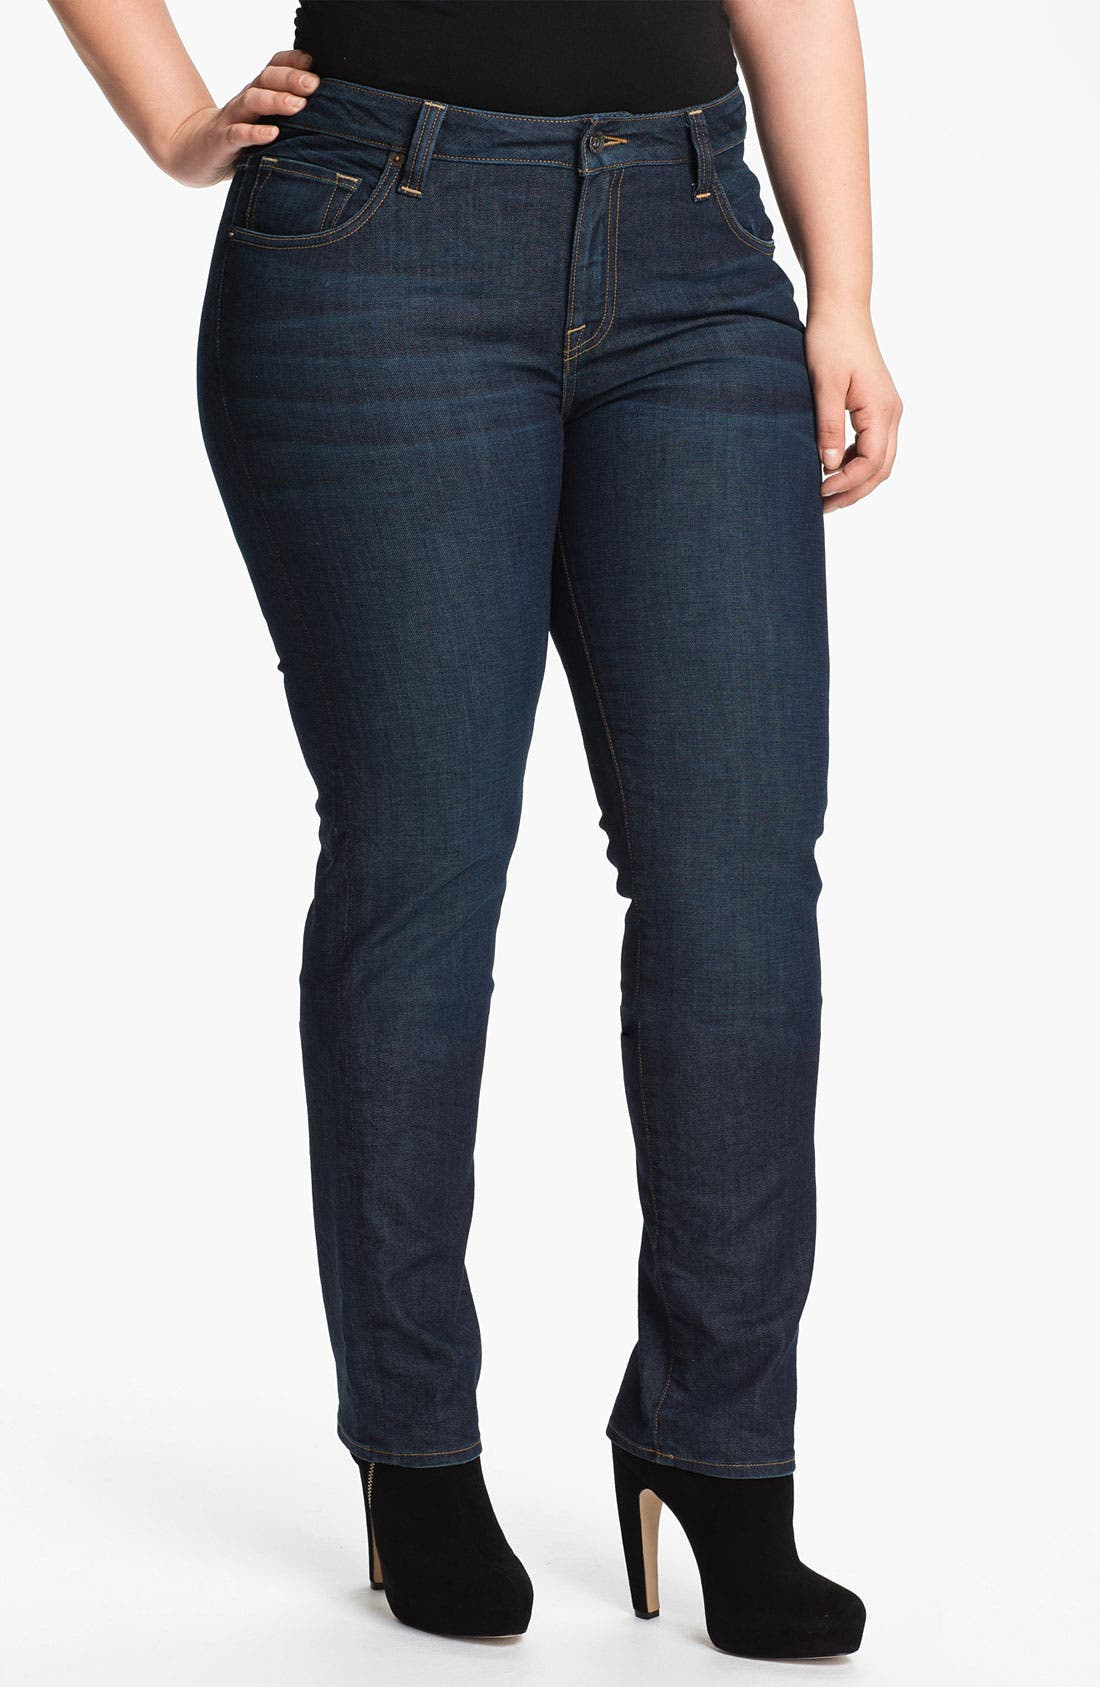 Alternate Image 1 Selected - Lucky Brand 'Ginger' Straight Denim Jeans (Plus Size)